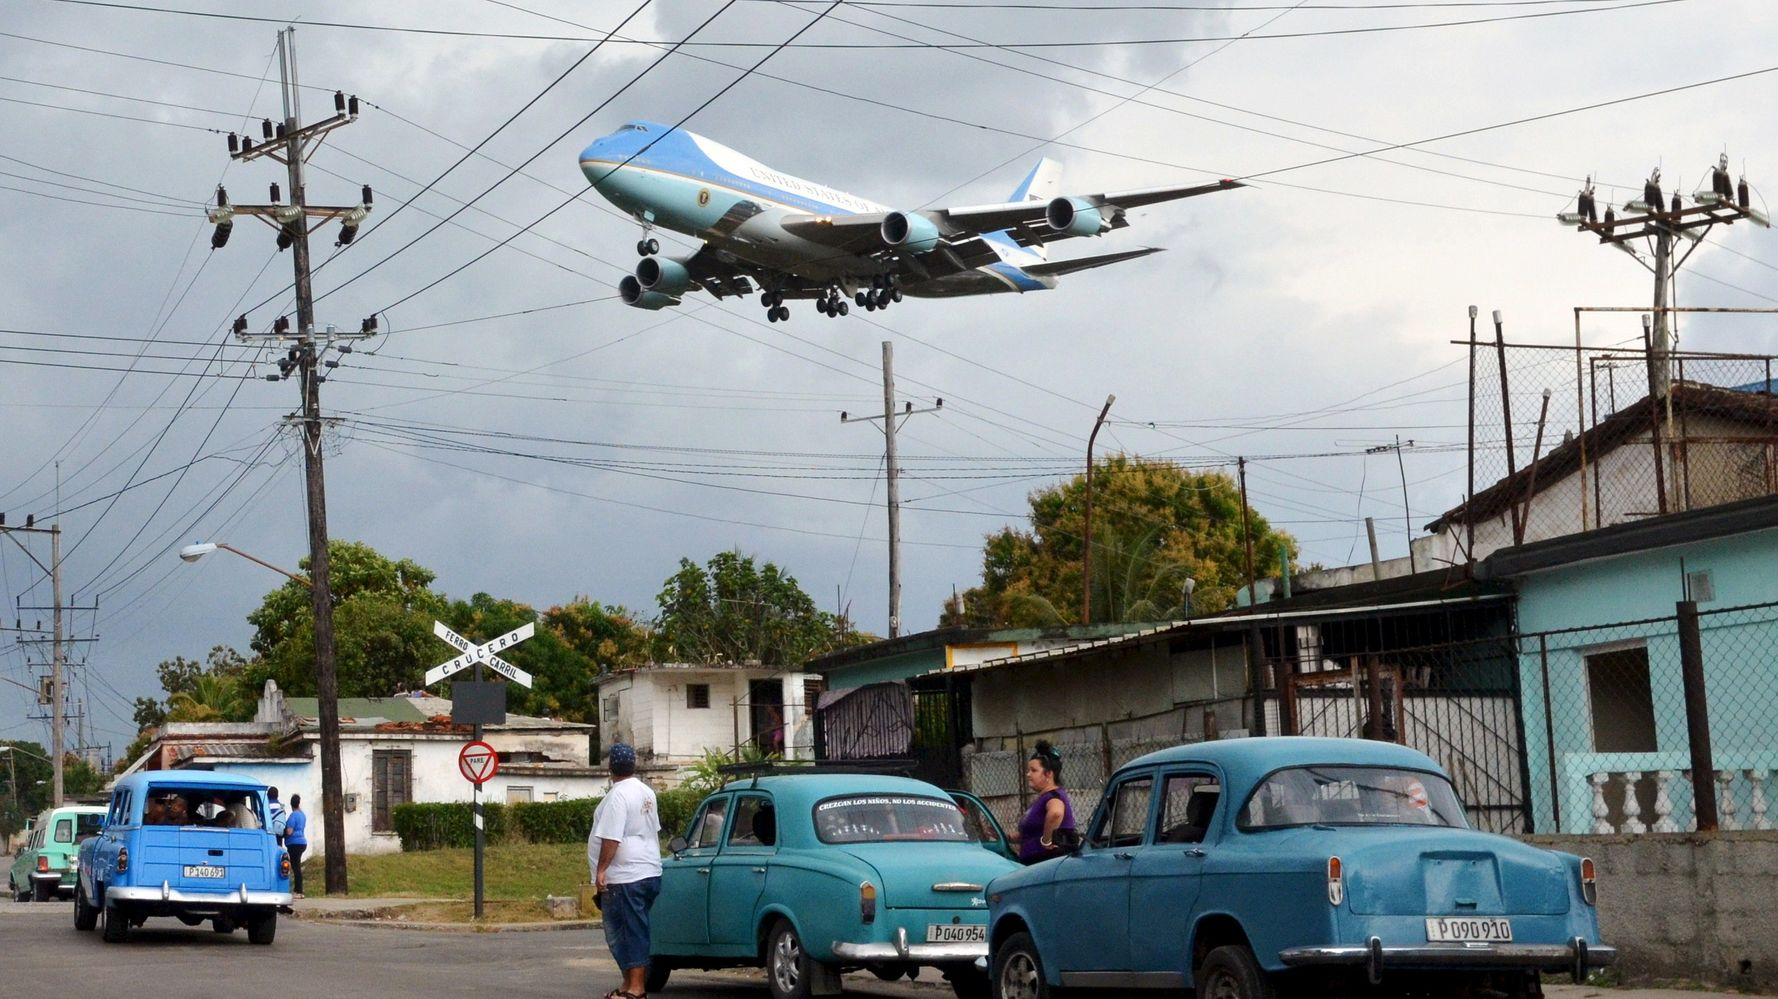 The Story Behind The Viral Photo Of Air Force One Gliding Over Havana